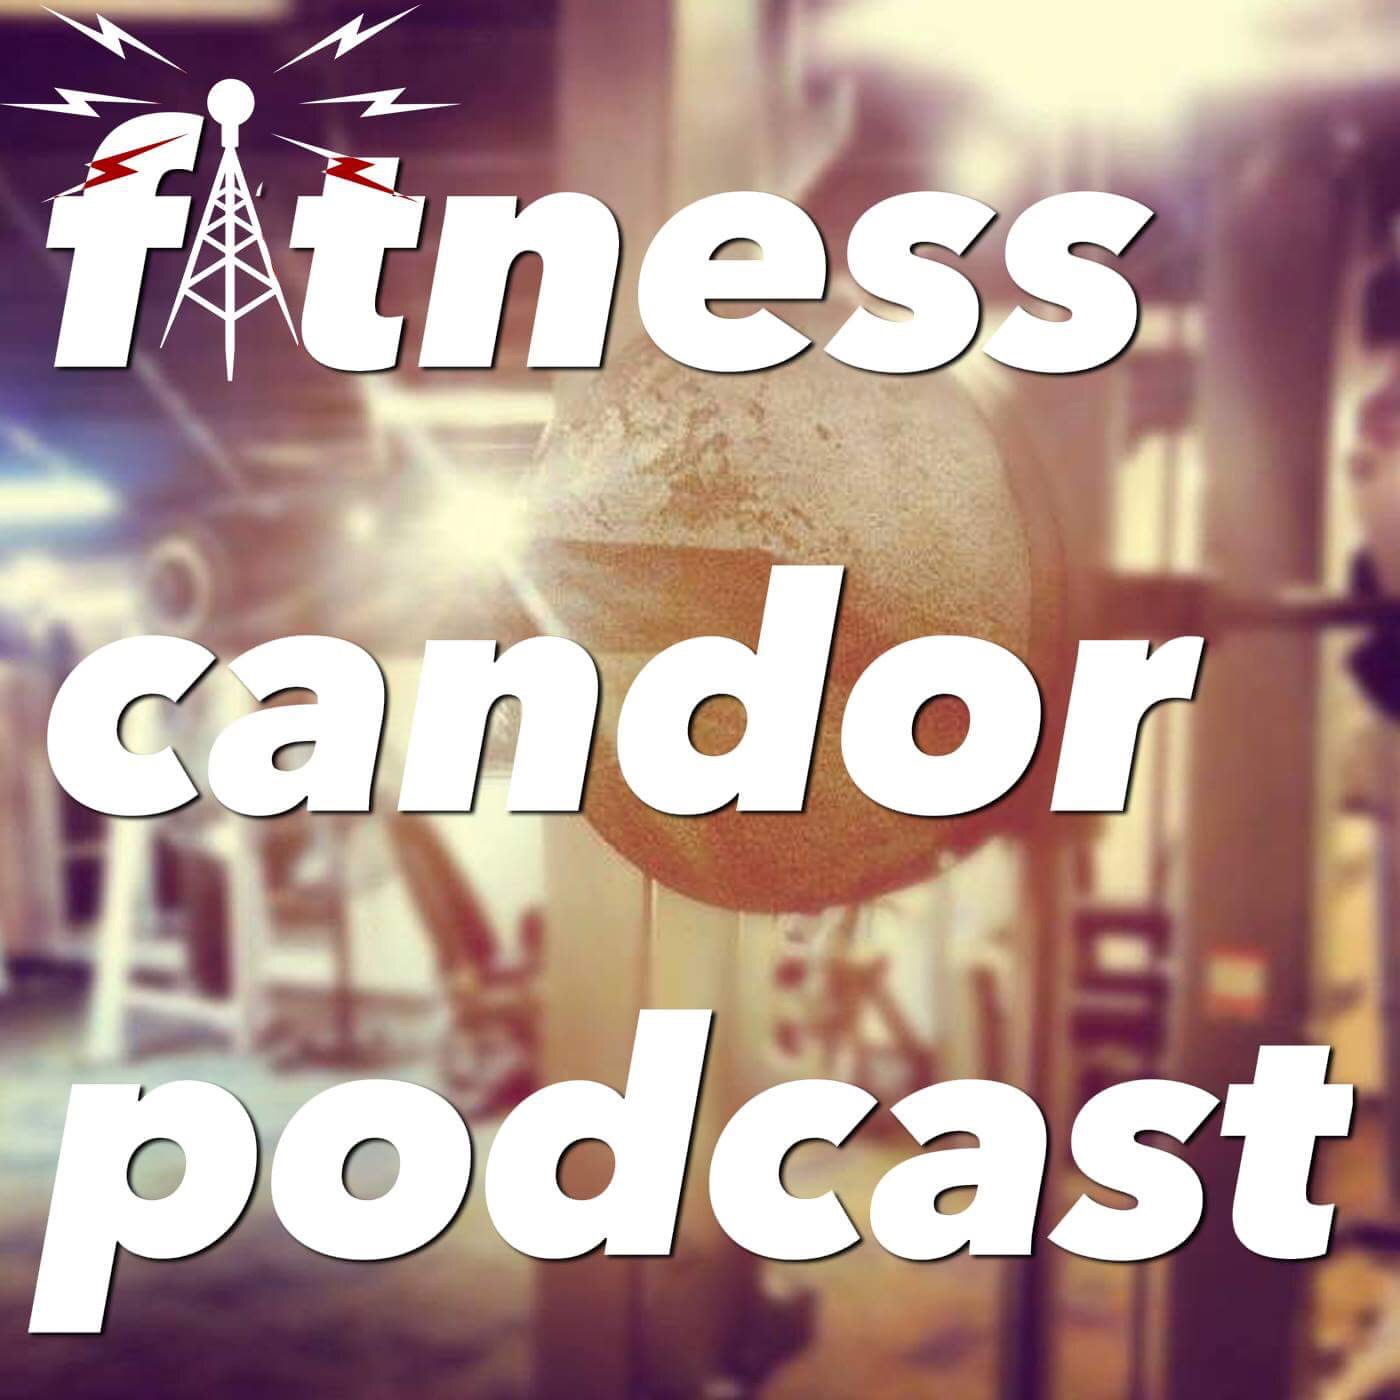 "Throwback Thursday episode 052 Coach Matt Camargo - Using and adjusting the needs analysis to find the ""why"", truly connecting with people and making every rep count."